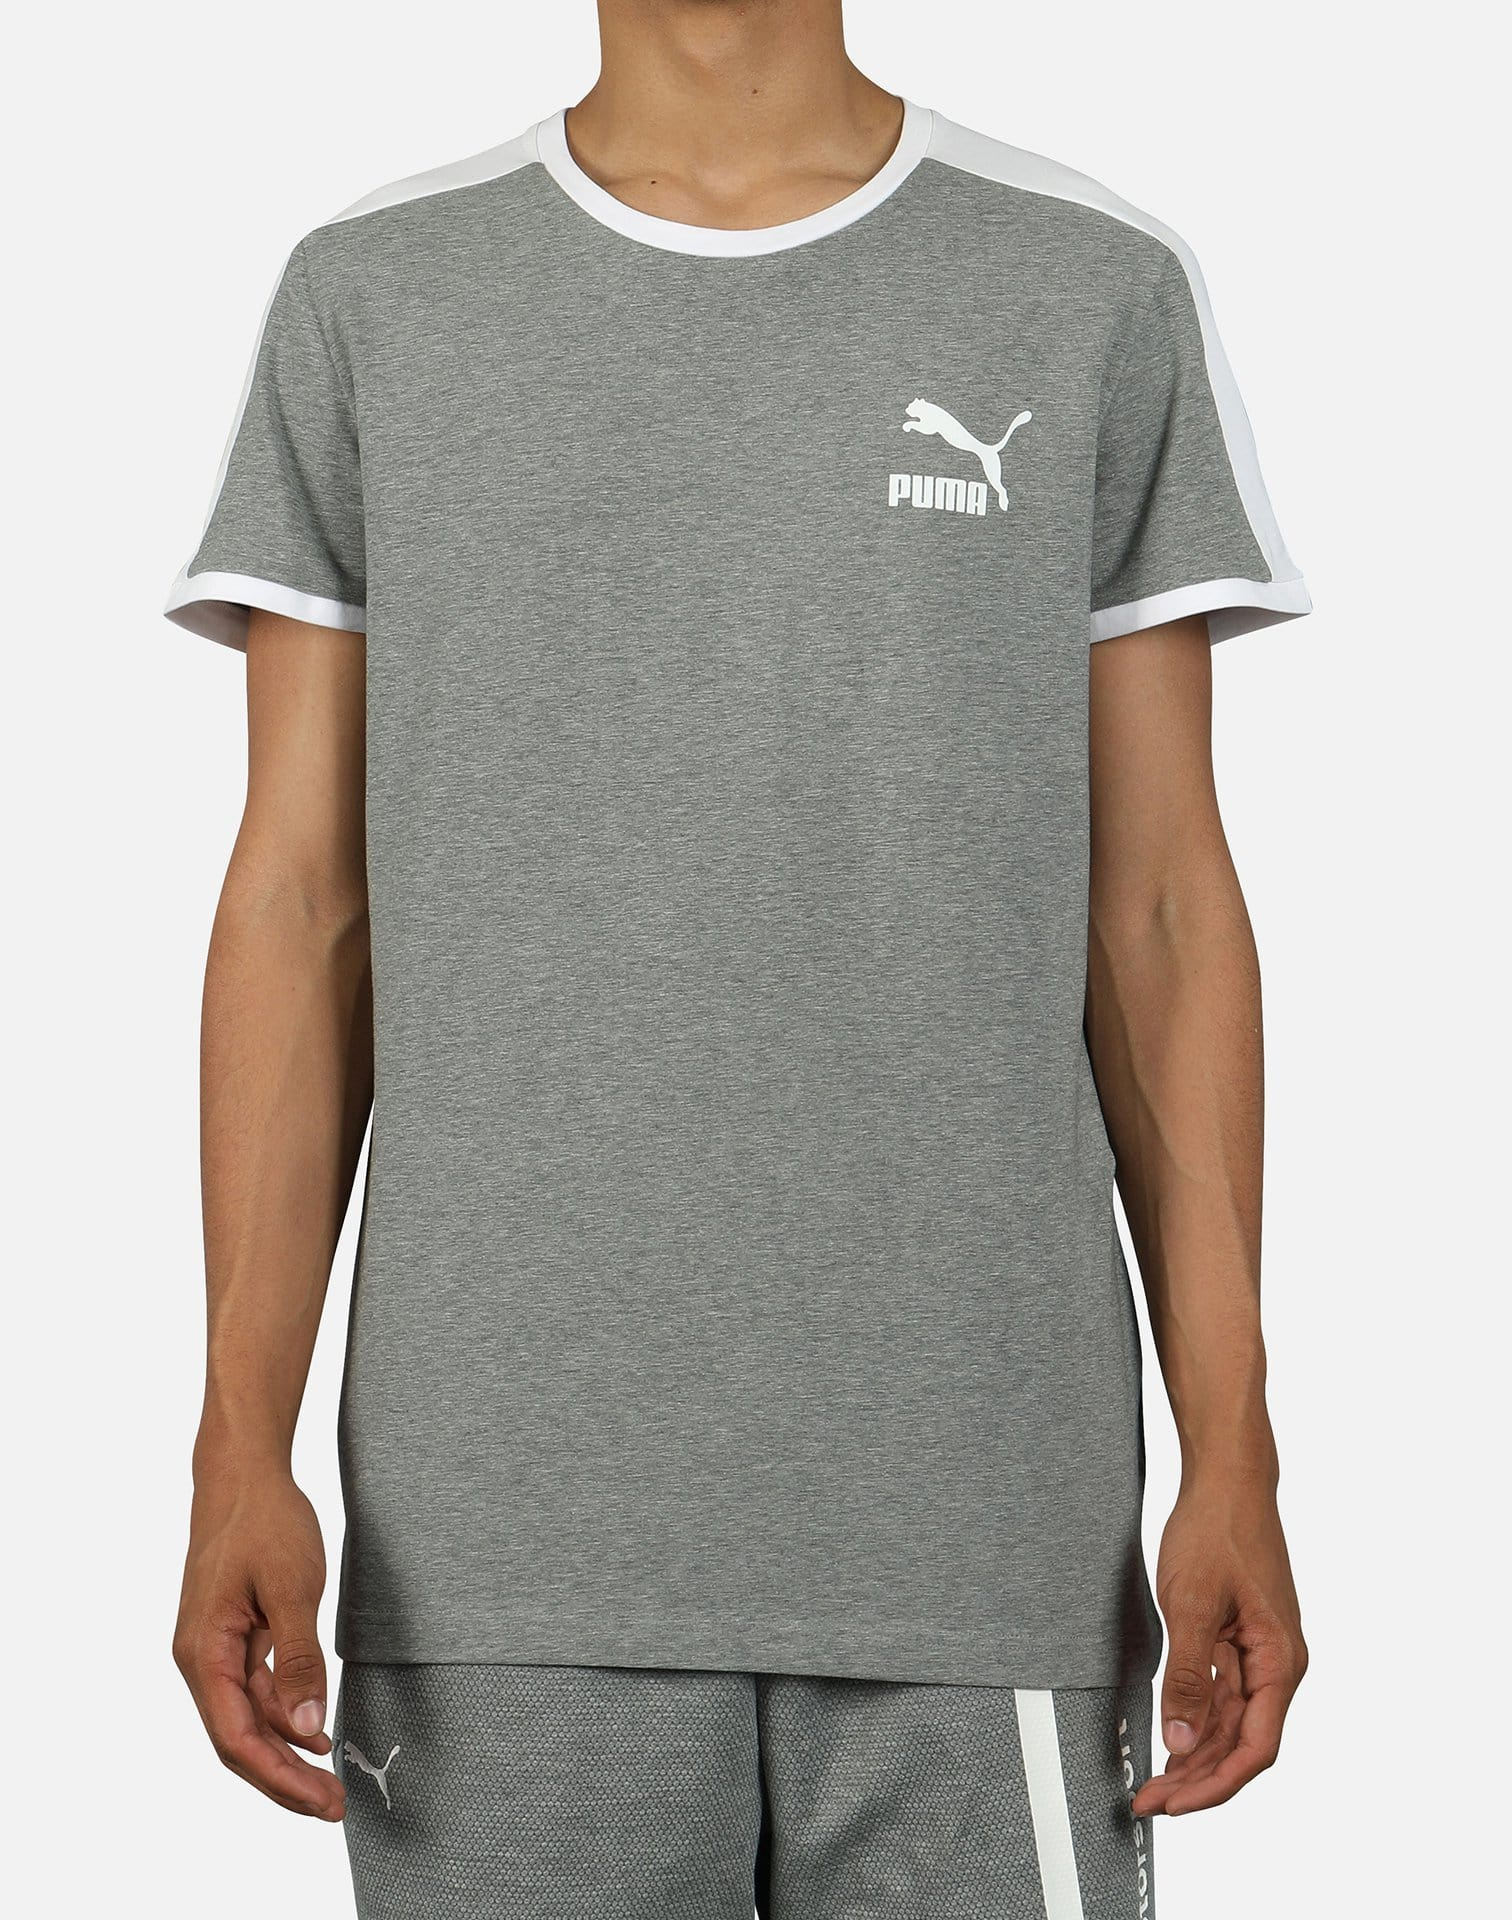 PUMA Men's Iconic T7 Slim Tee